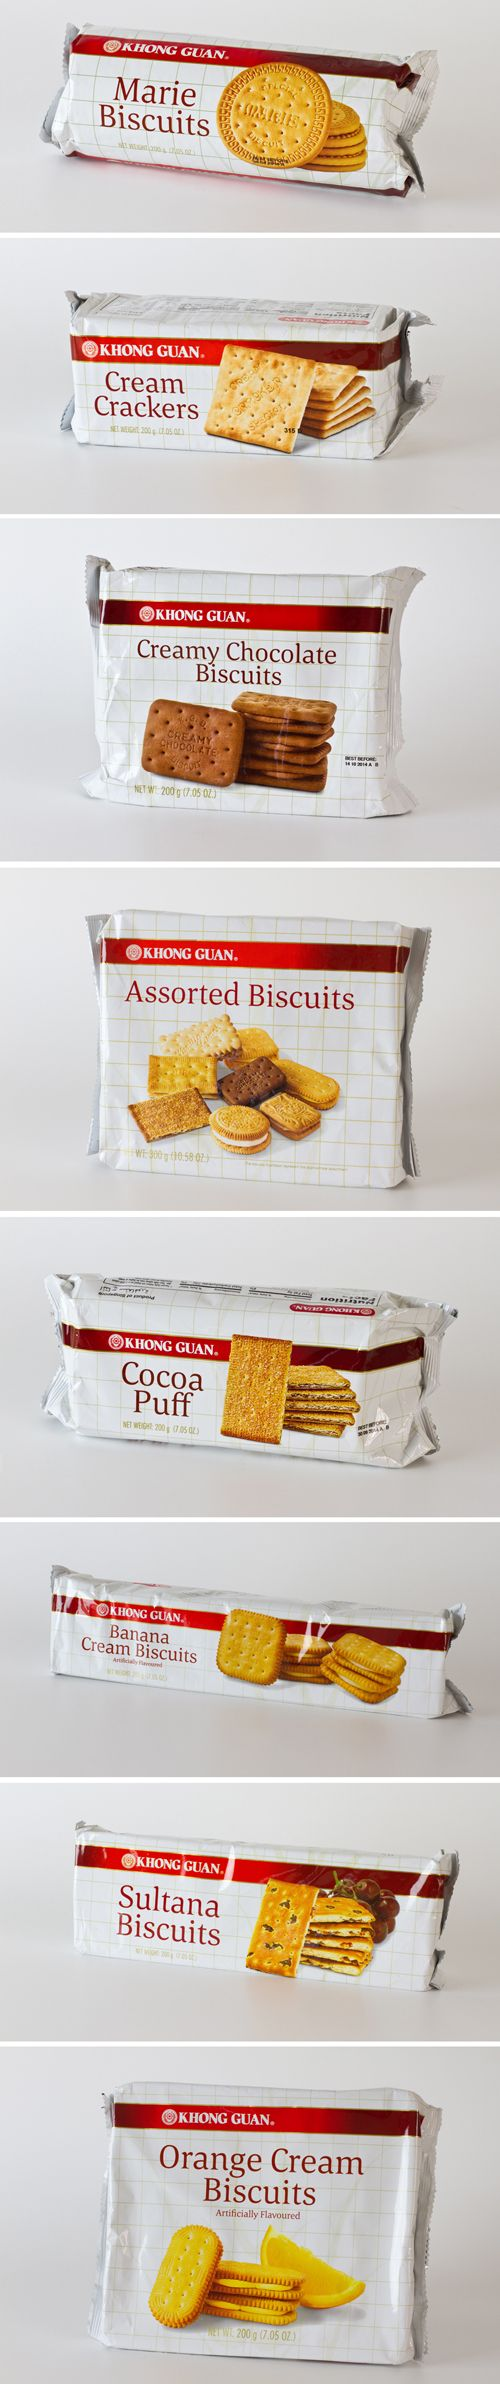 "Khong Guan Singapore - snacks and biscuits manufacturer. Photographed the biscuits and designed a facelift of their original ""checker series"" biscuits. Most original elements must be retained like the checker pattern and the logo red band. To adhere to these restrictions, a fresher interpretation for these graphics have been applied.  #biscuitPackaging #packagingDesign #biscuitPhotography"